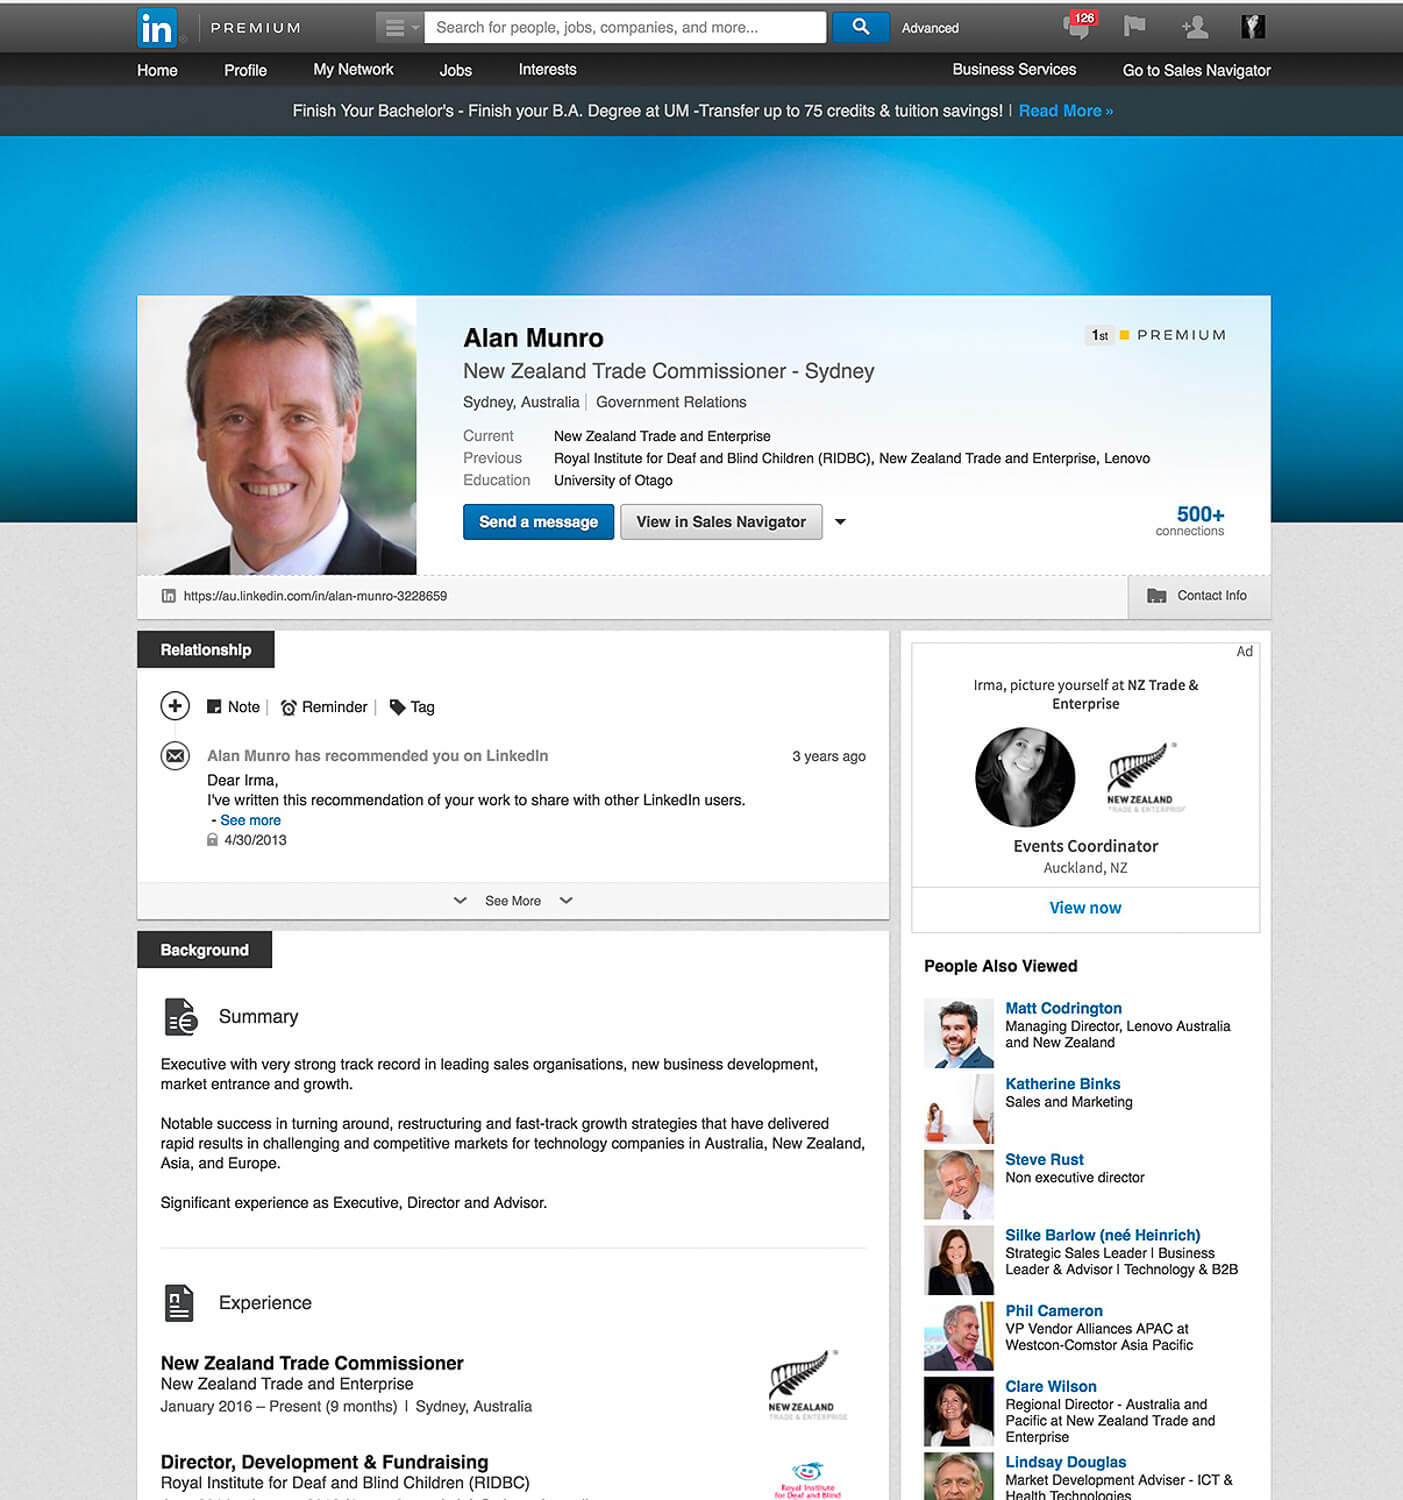 Alan_Munro___LinkedIn_and_Adobe_Photoshop_CC_2015_and_SAMPLES_FOR_WEB_SITE_FINAL